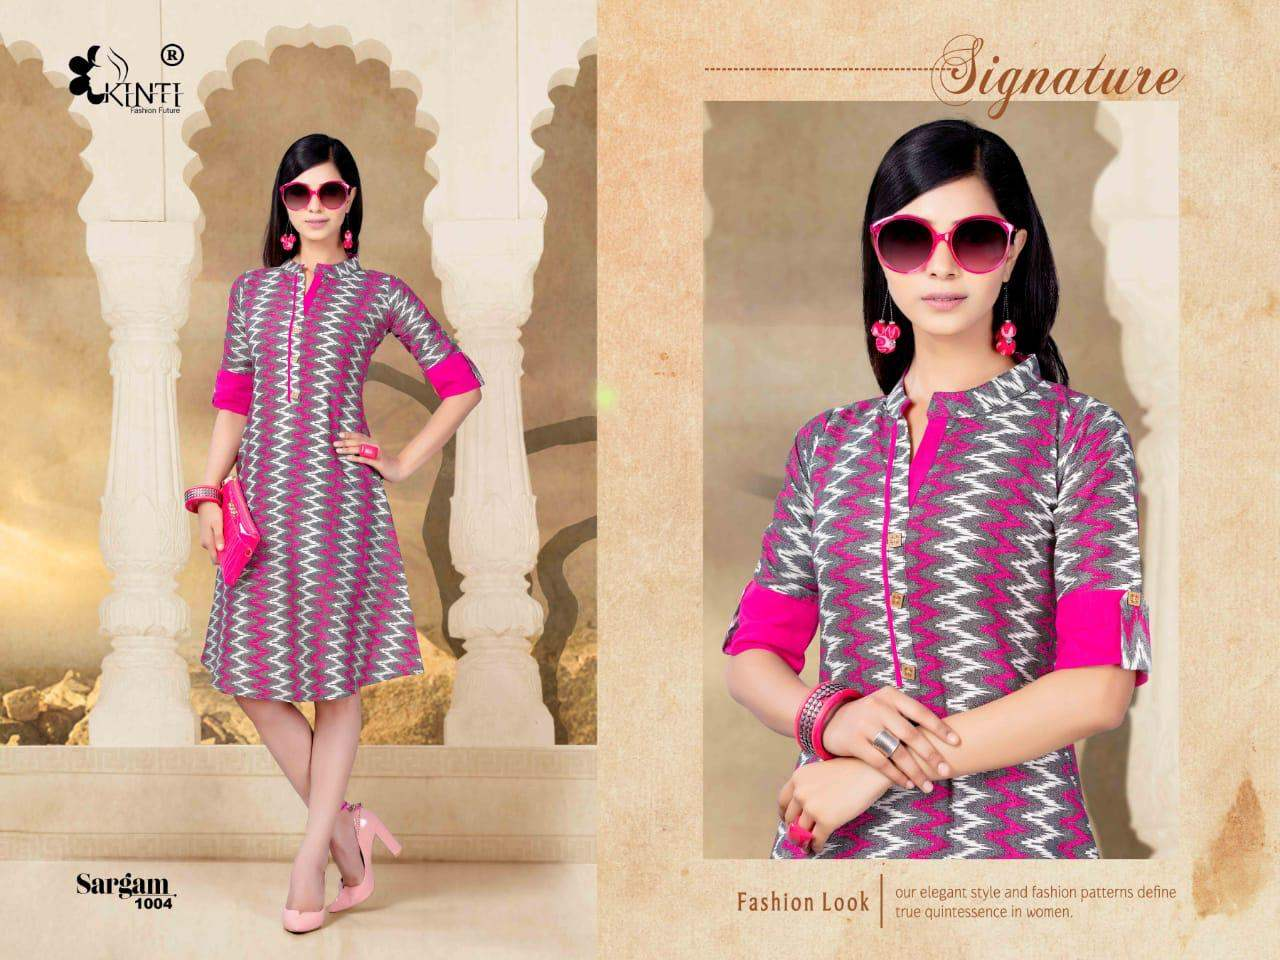 Sargam By Kinti collection 5